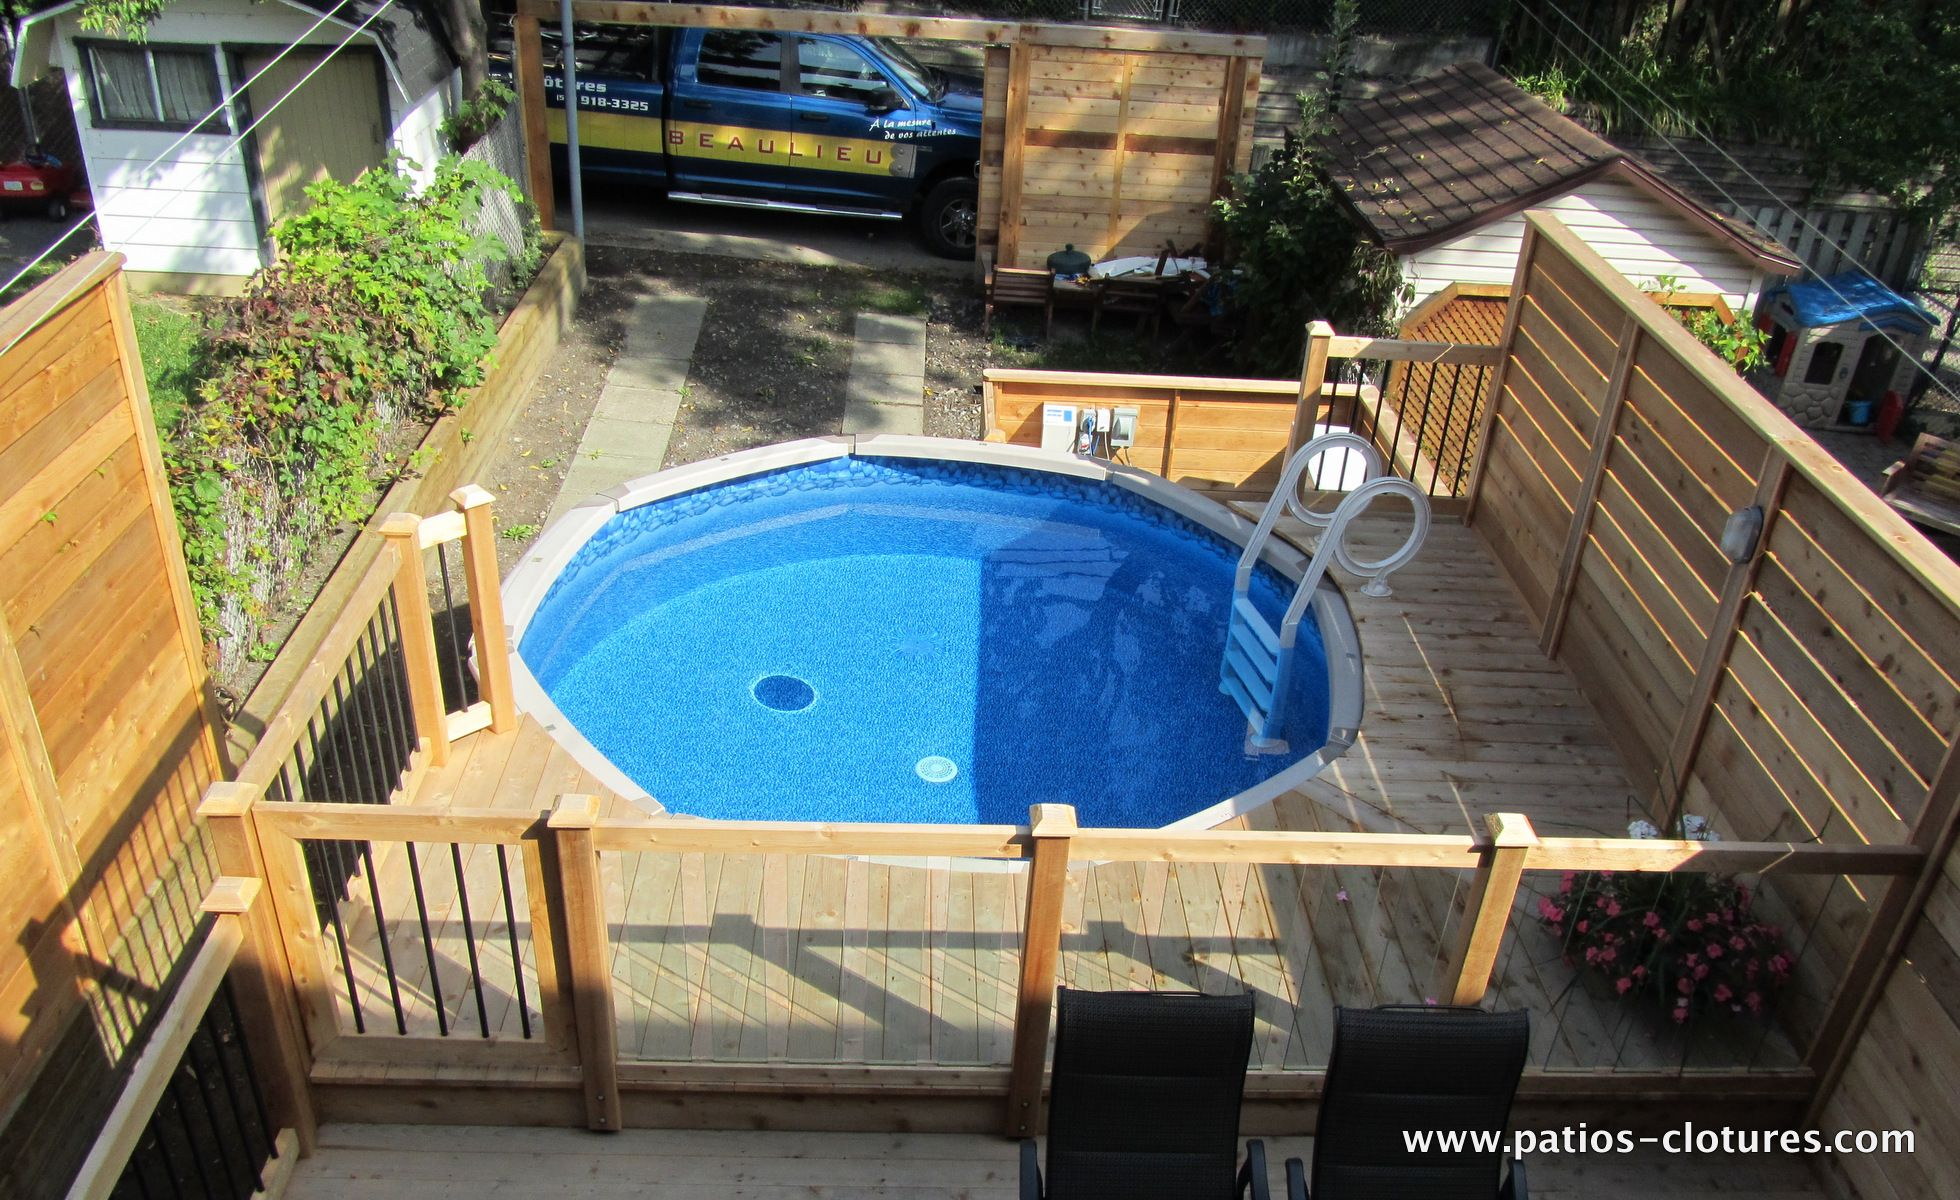 Above Ground Pool Deck With Tempered Glass Railing A Dining Area